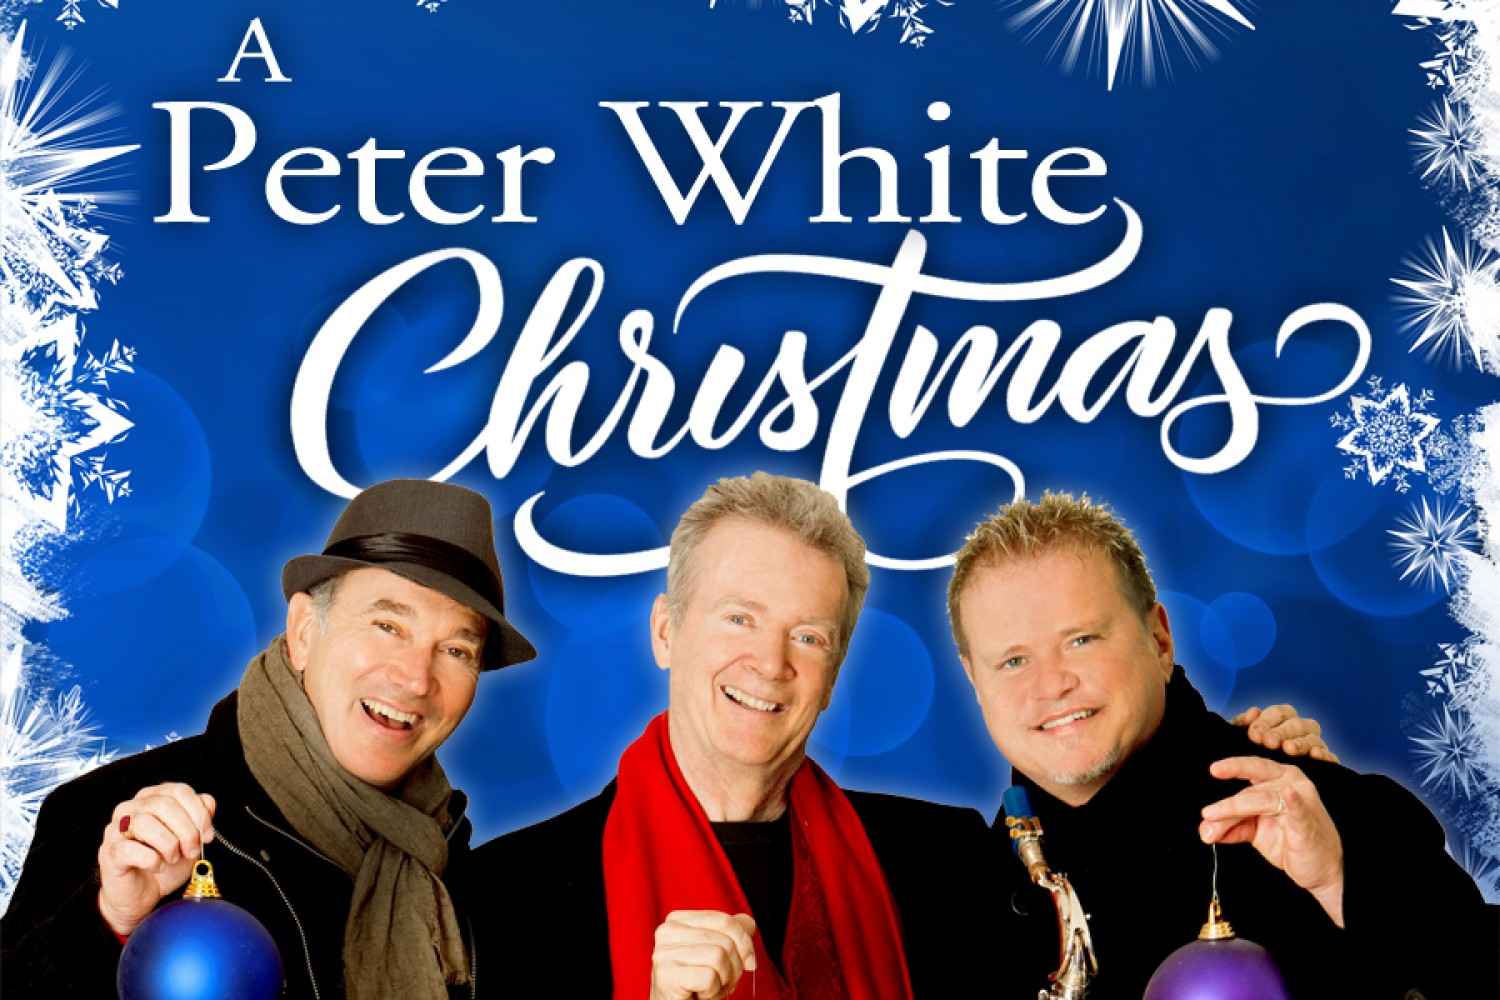 a peter white christmas featuring rick braun and euge groove show